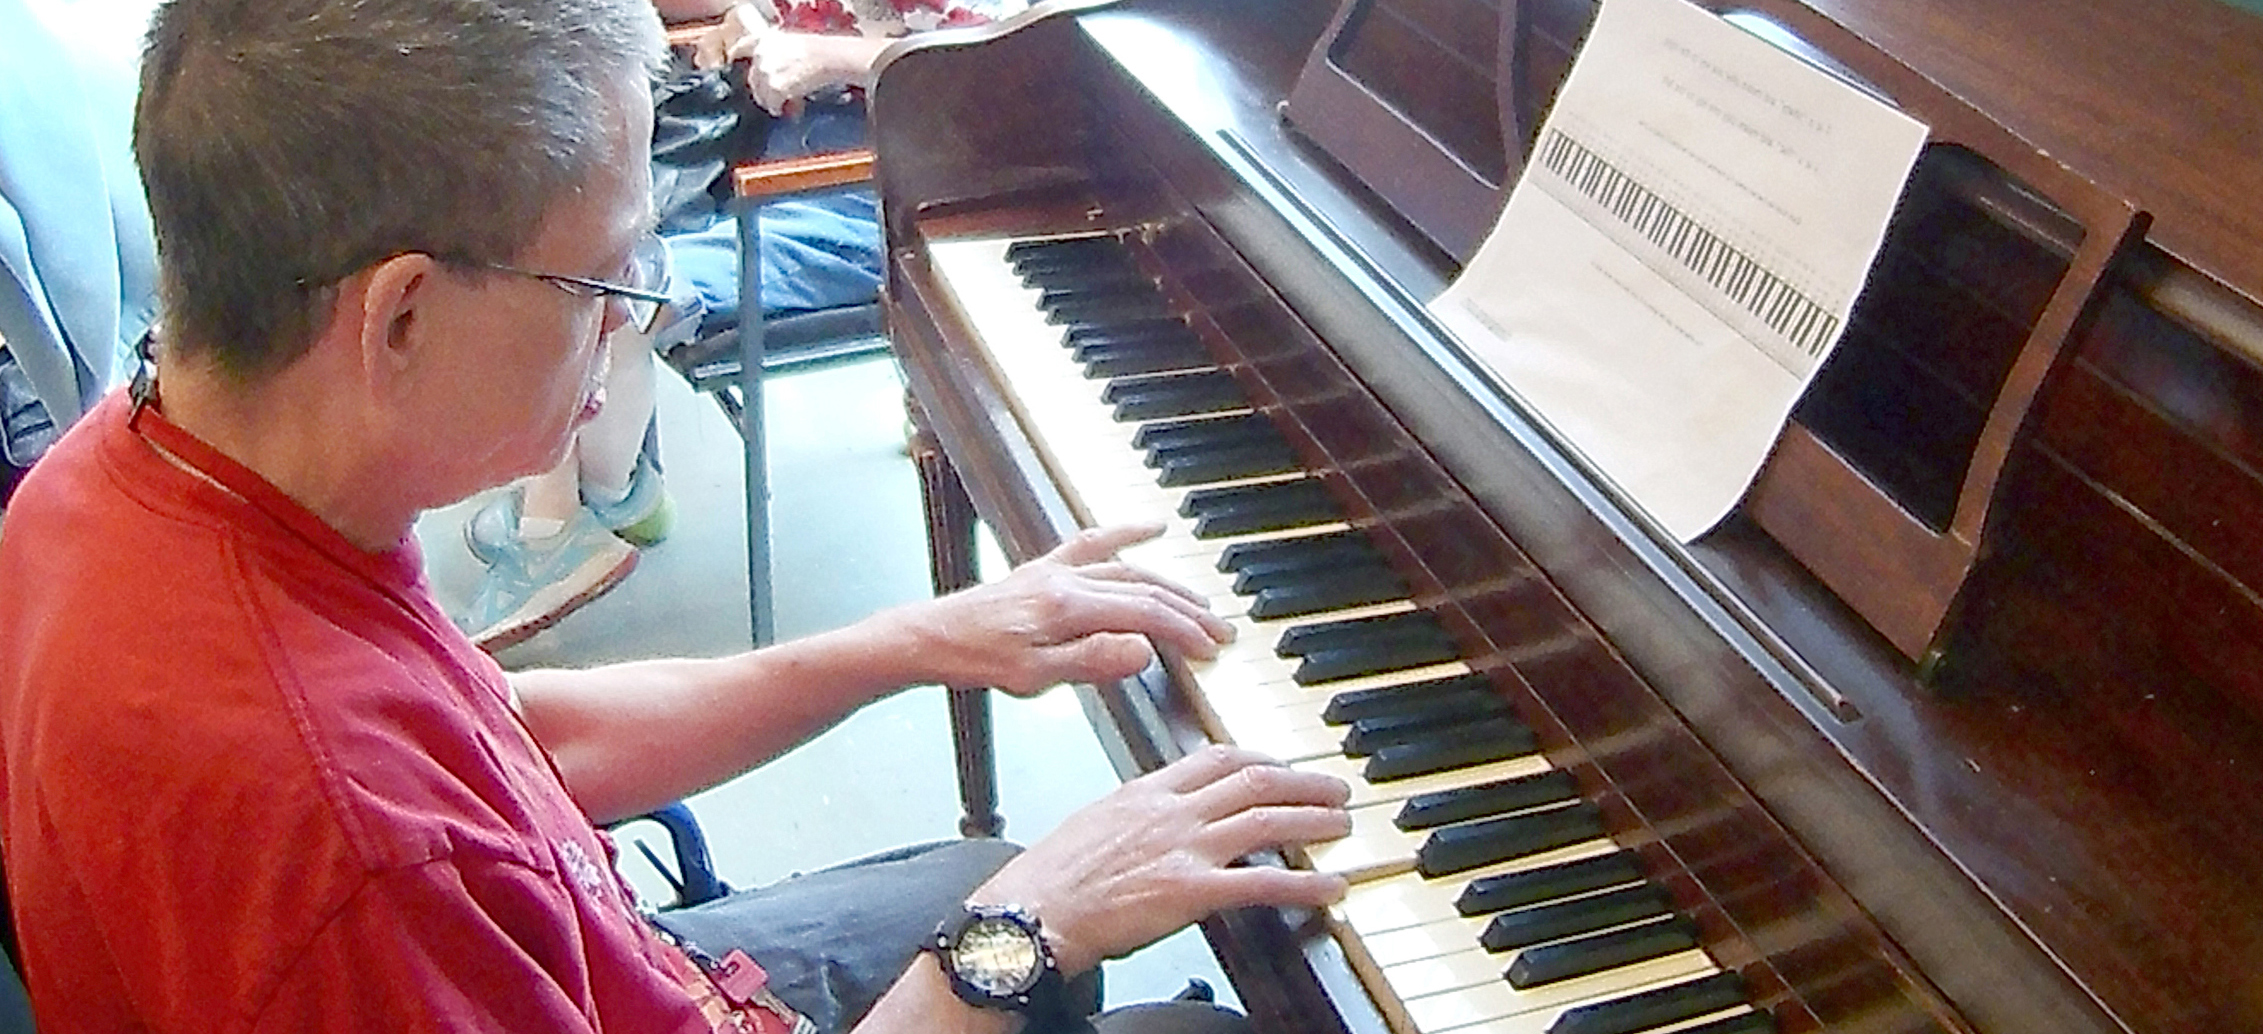 A man with a developmental disability plays the piano at day program.